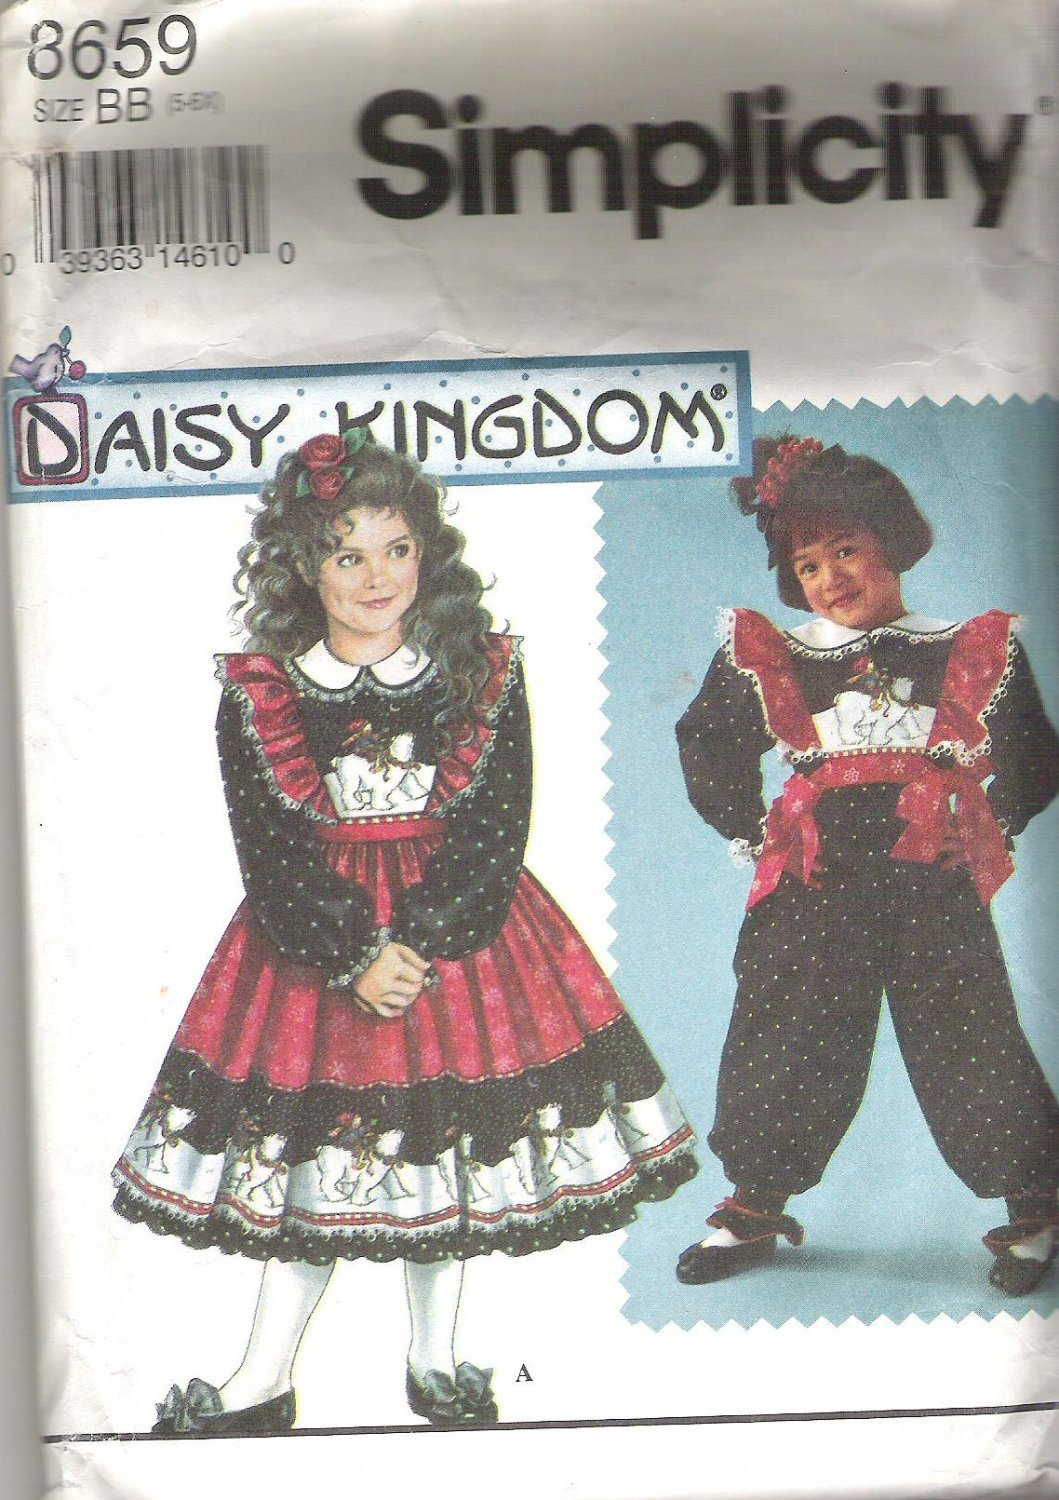 1993 Simplicity 8659 Pattern Girls Dress Pinafore Petticoat Jumpsuit Tabard  Size 5-6X  Cut to 6X